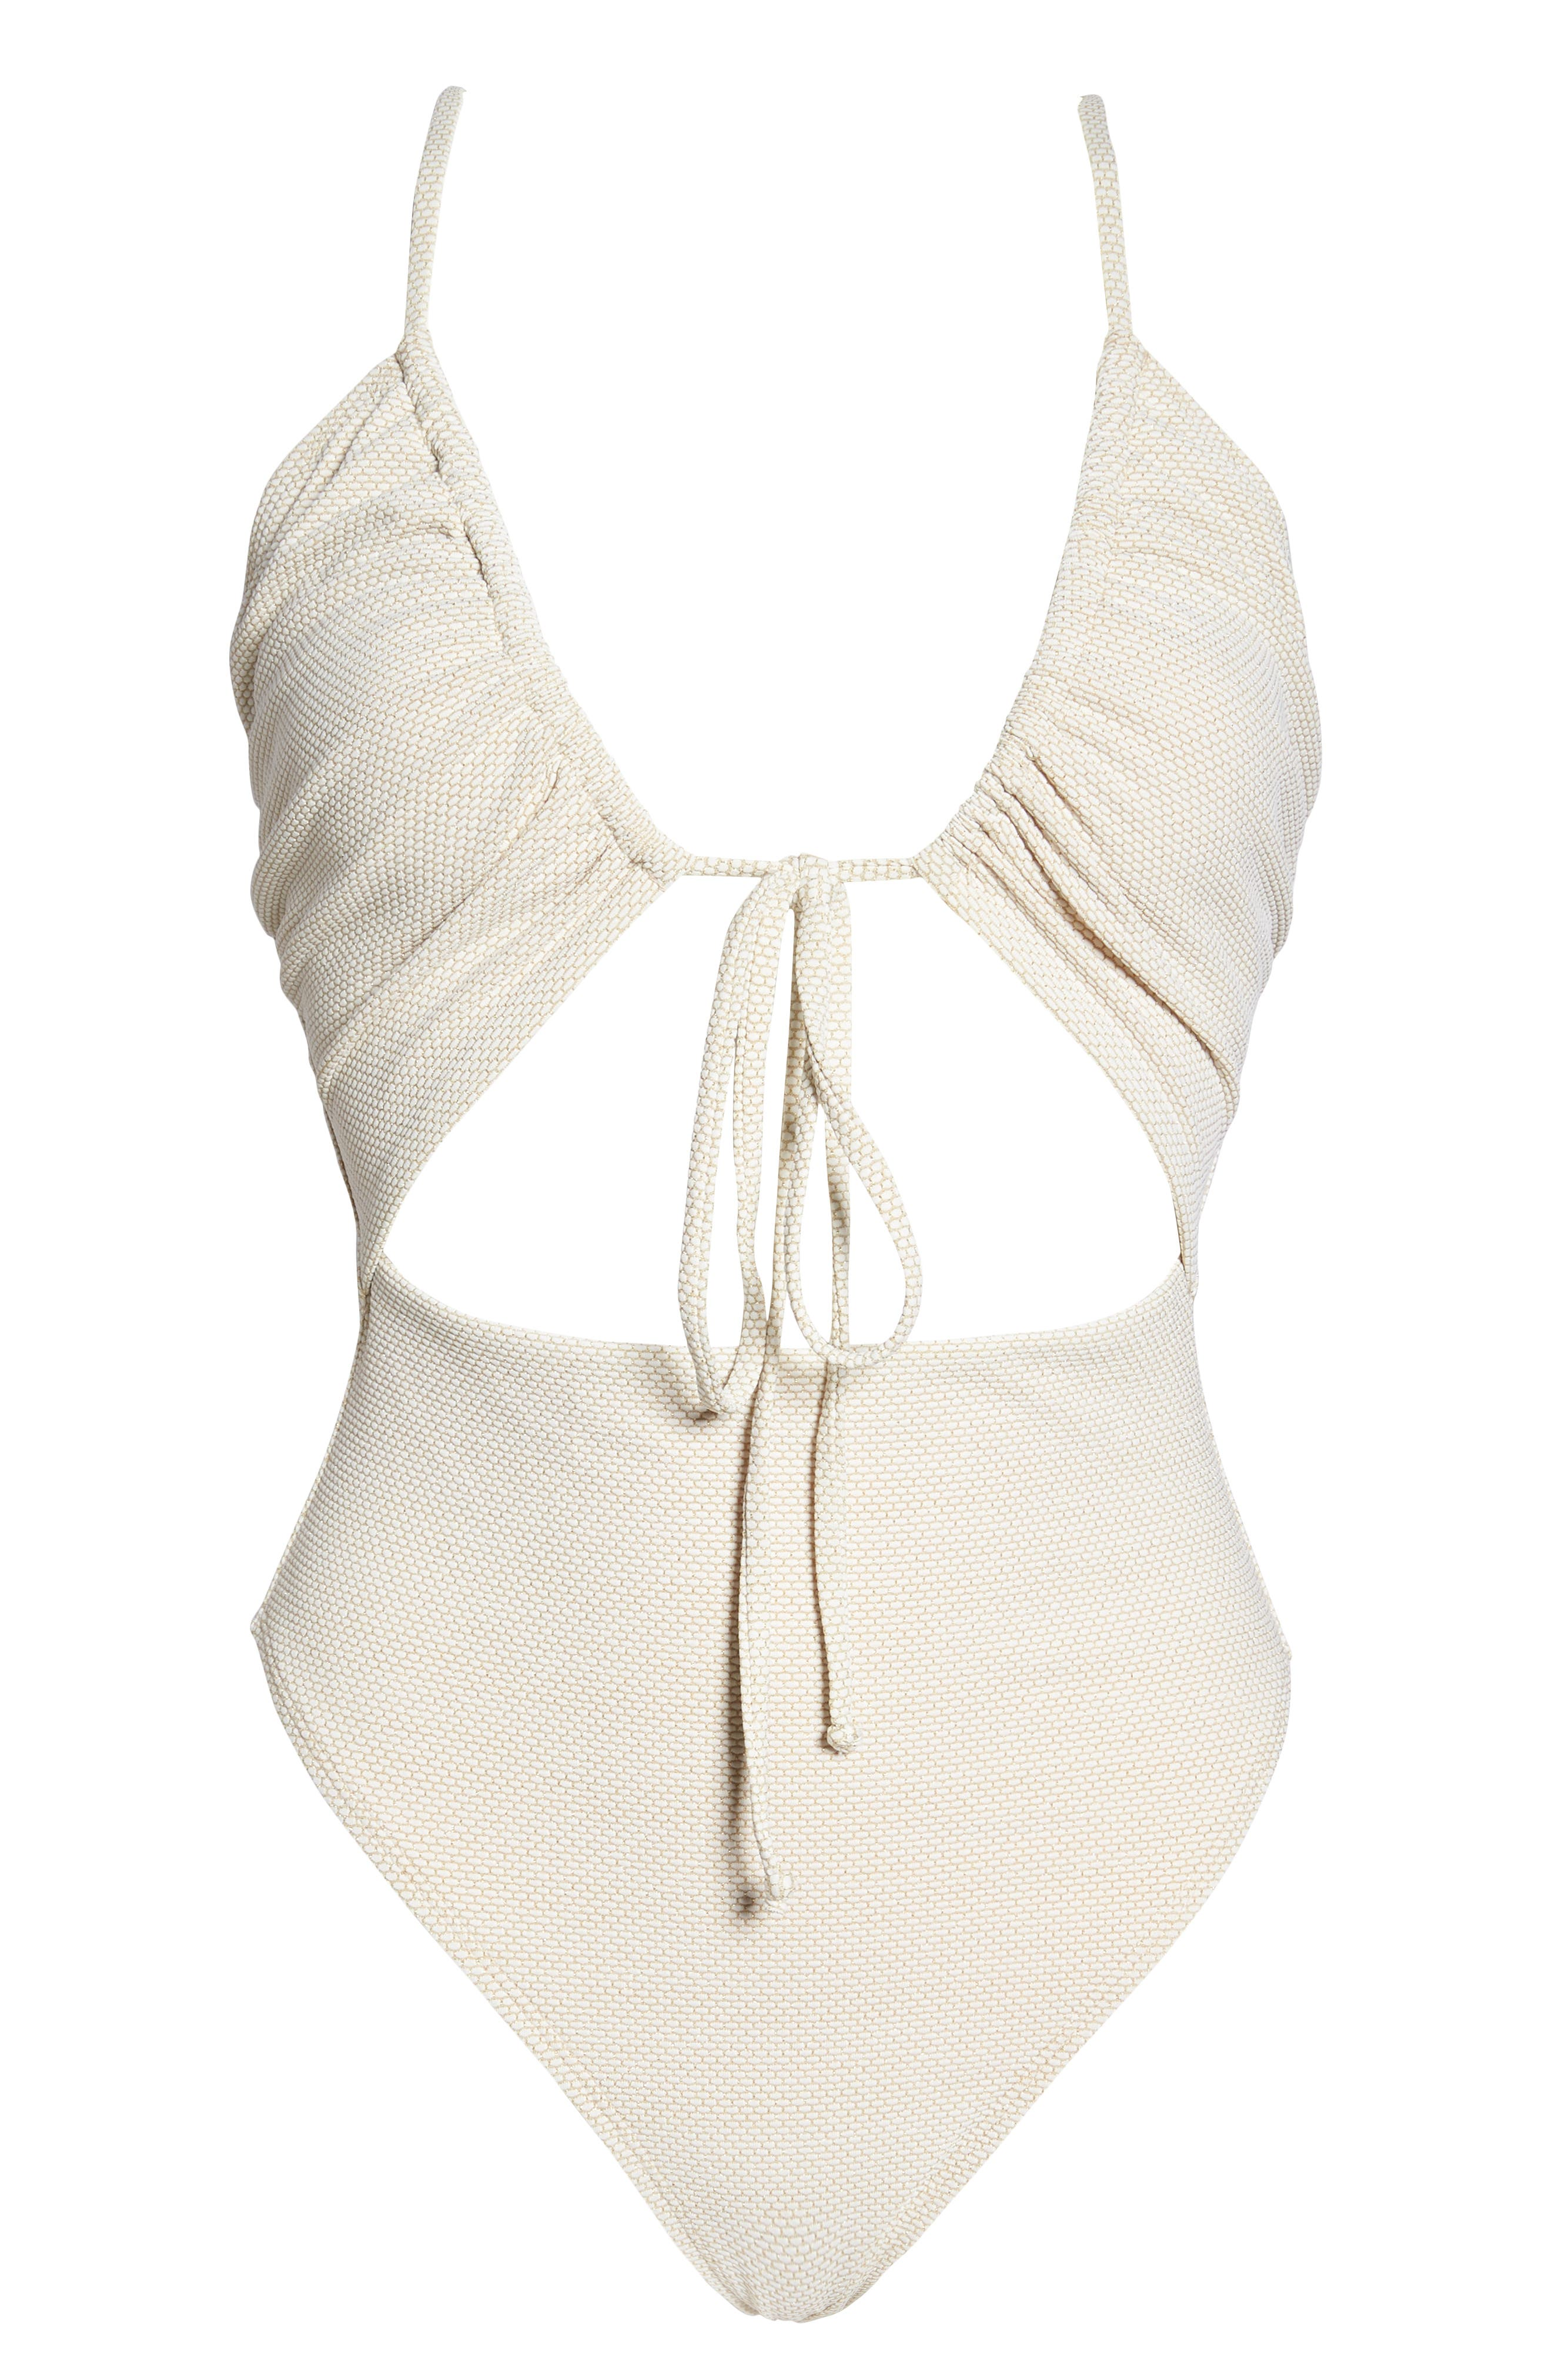 South Beach One-Piece Swimsuit,                             Alternate thumbnail 6, color,                             IVORY EGRET